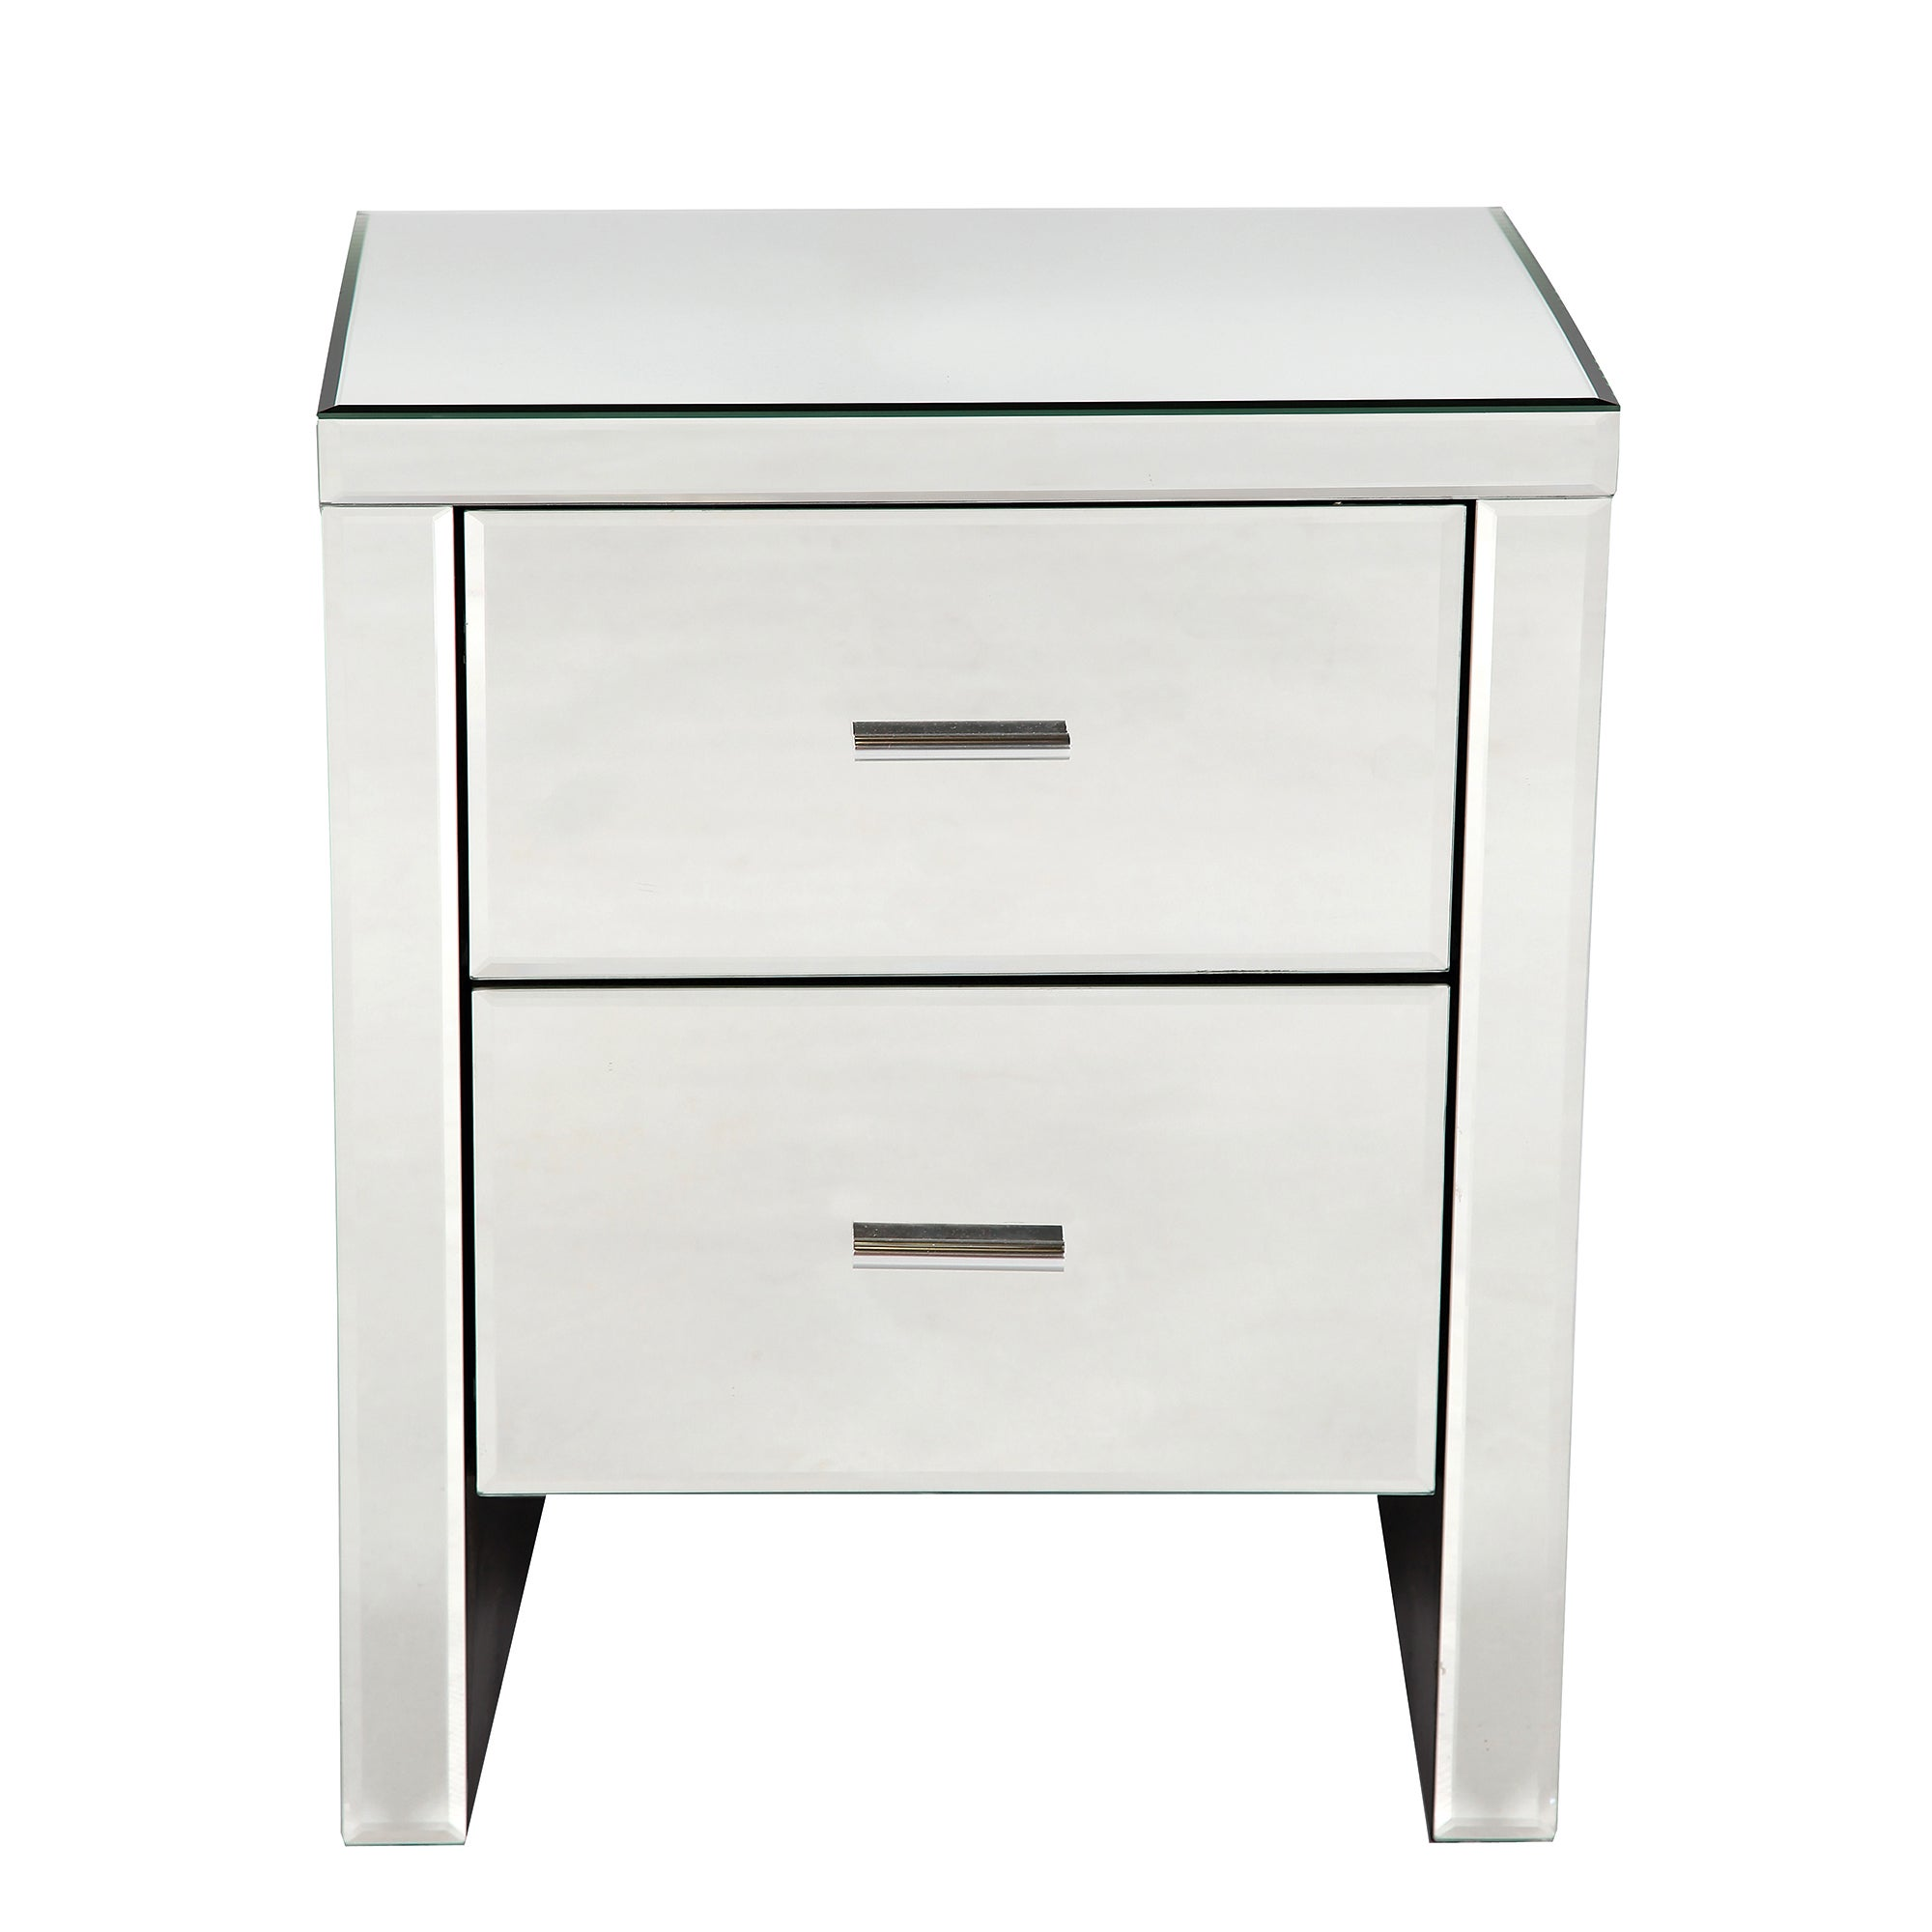 Venetian 2 Drawer Mirrored Bedside Cabinet